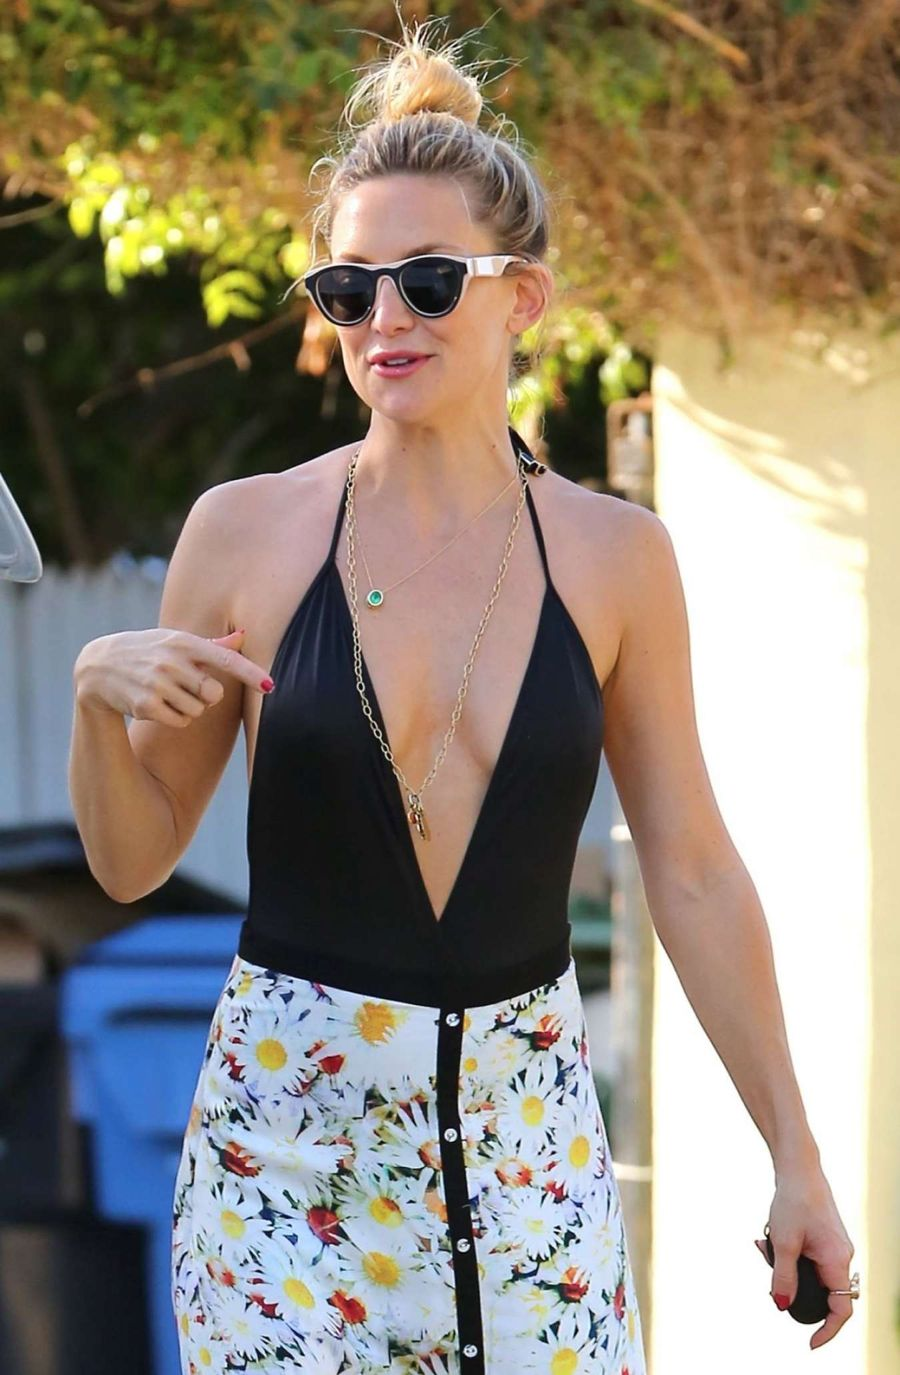 Kate Hudson Dons a Daring Black Dress in Brentwood